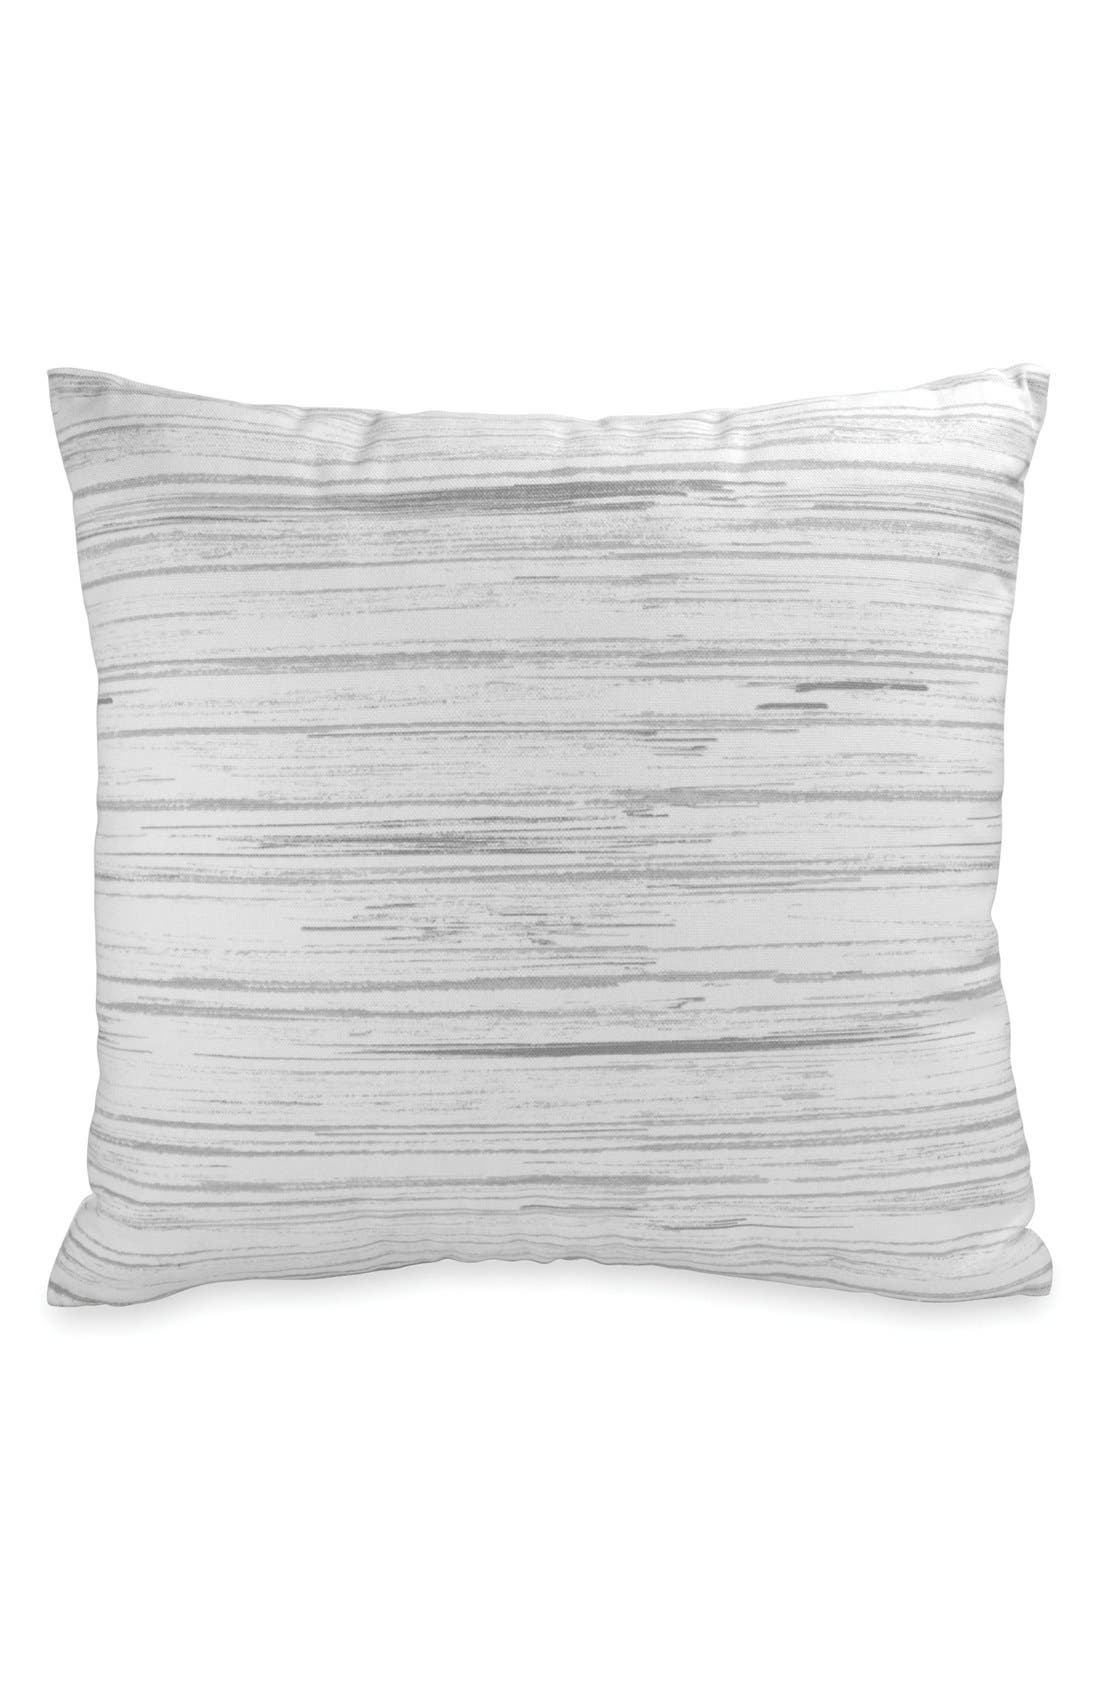 Alternate Image 1 Selected - DKNY 'Loft Stripe' Pillow